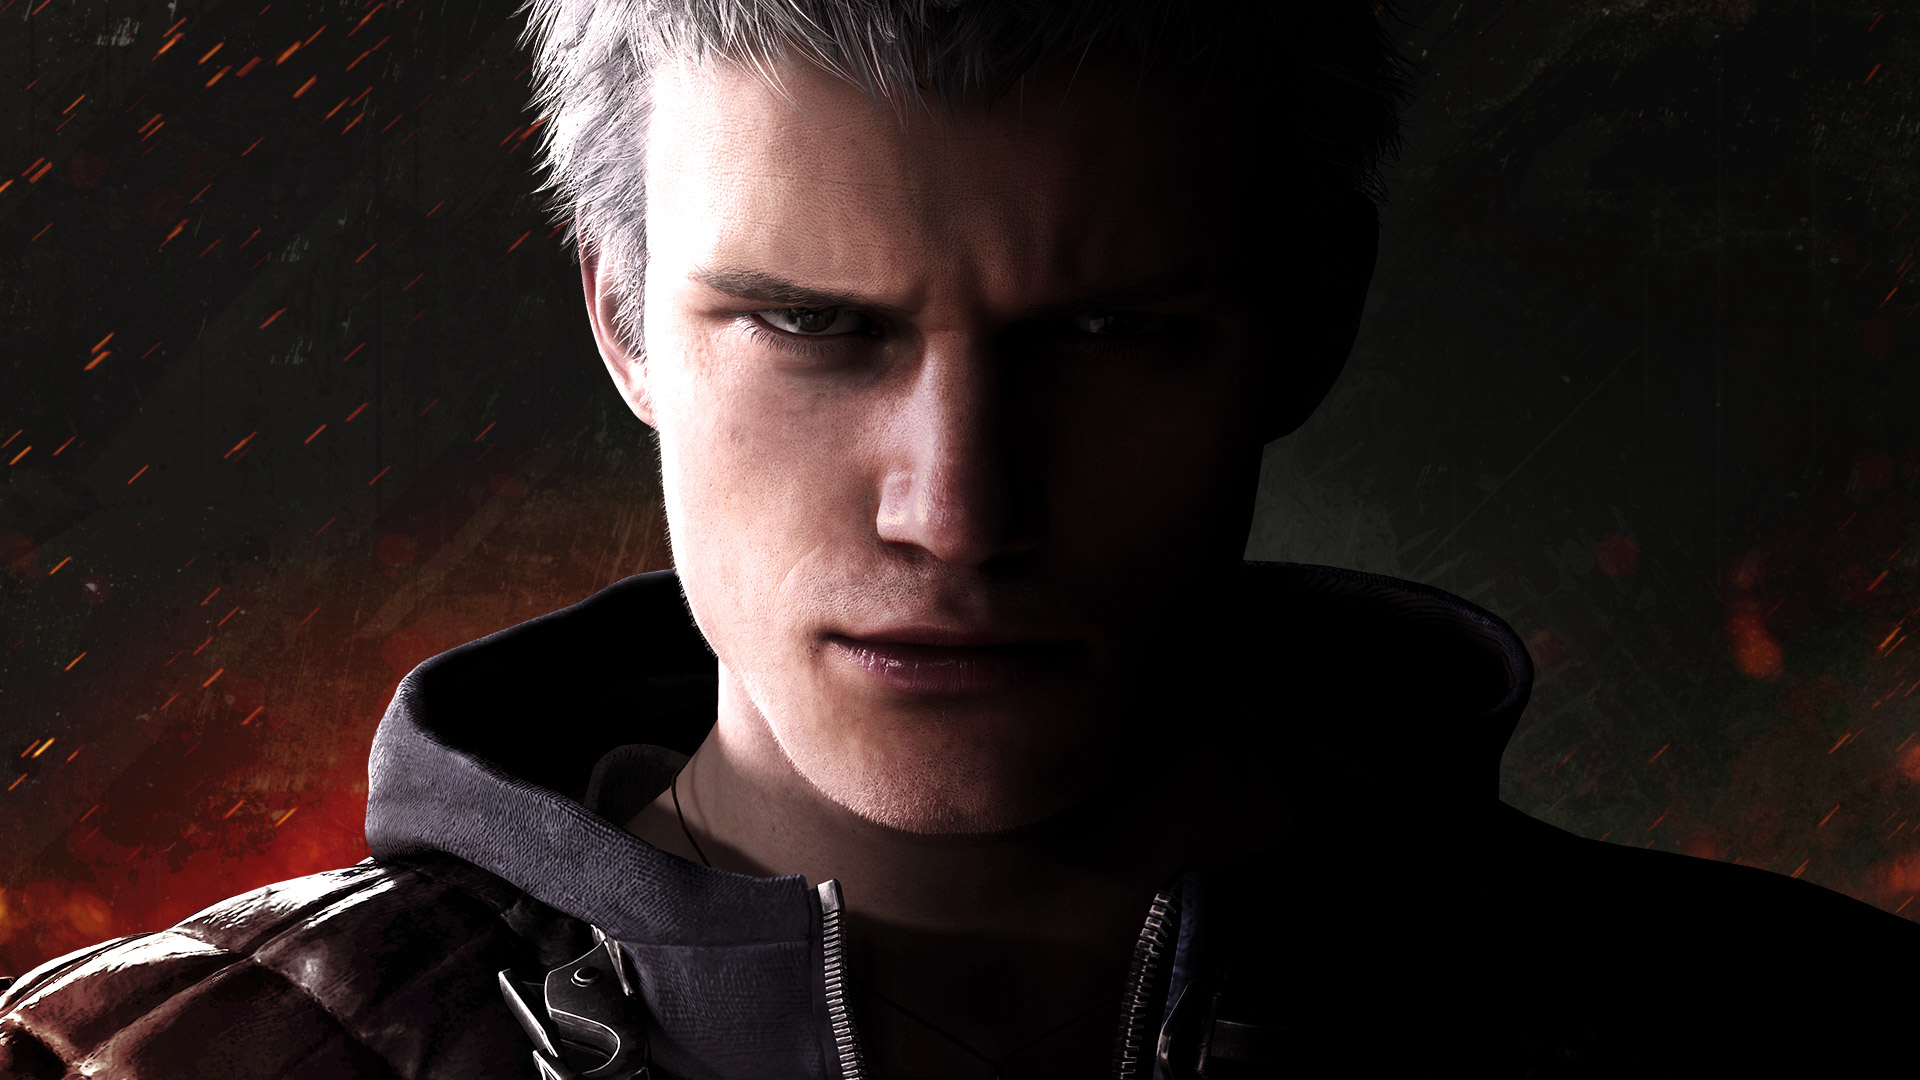 Vergil Devil May Cry 5 Wallpaper Hd Games 4k Wallpapers Images